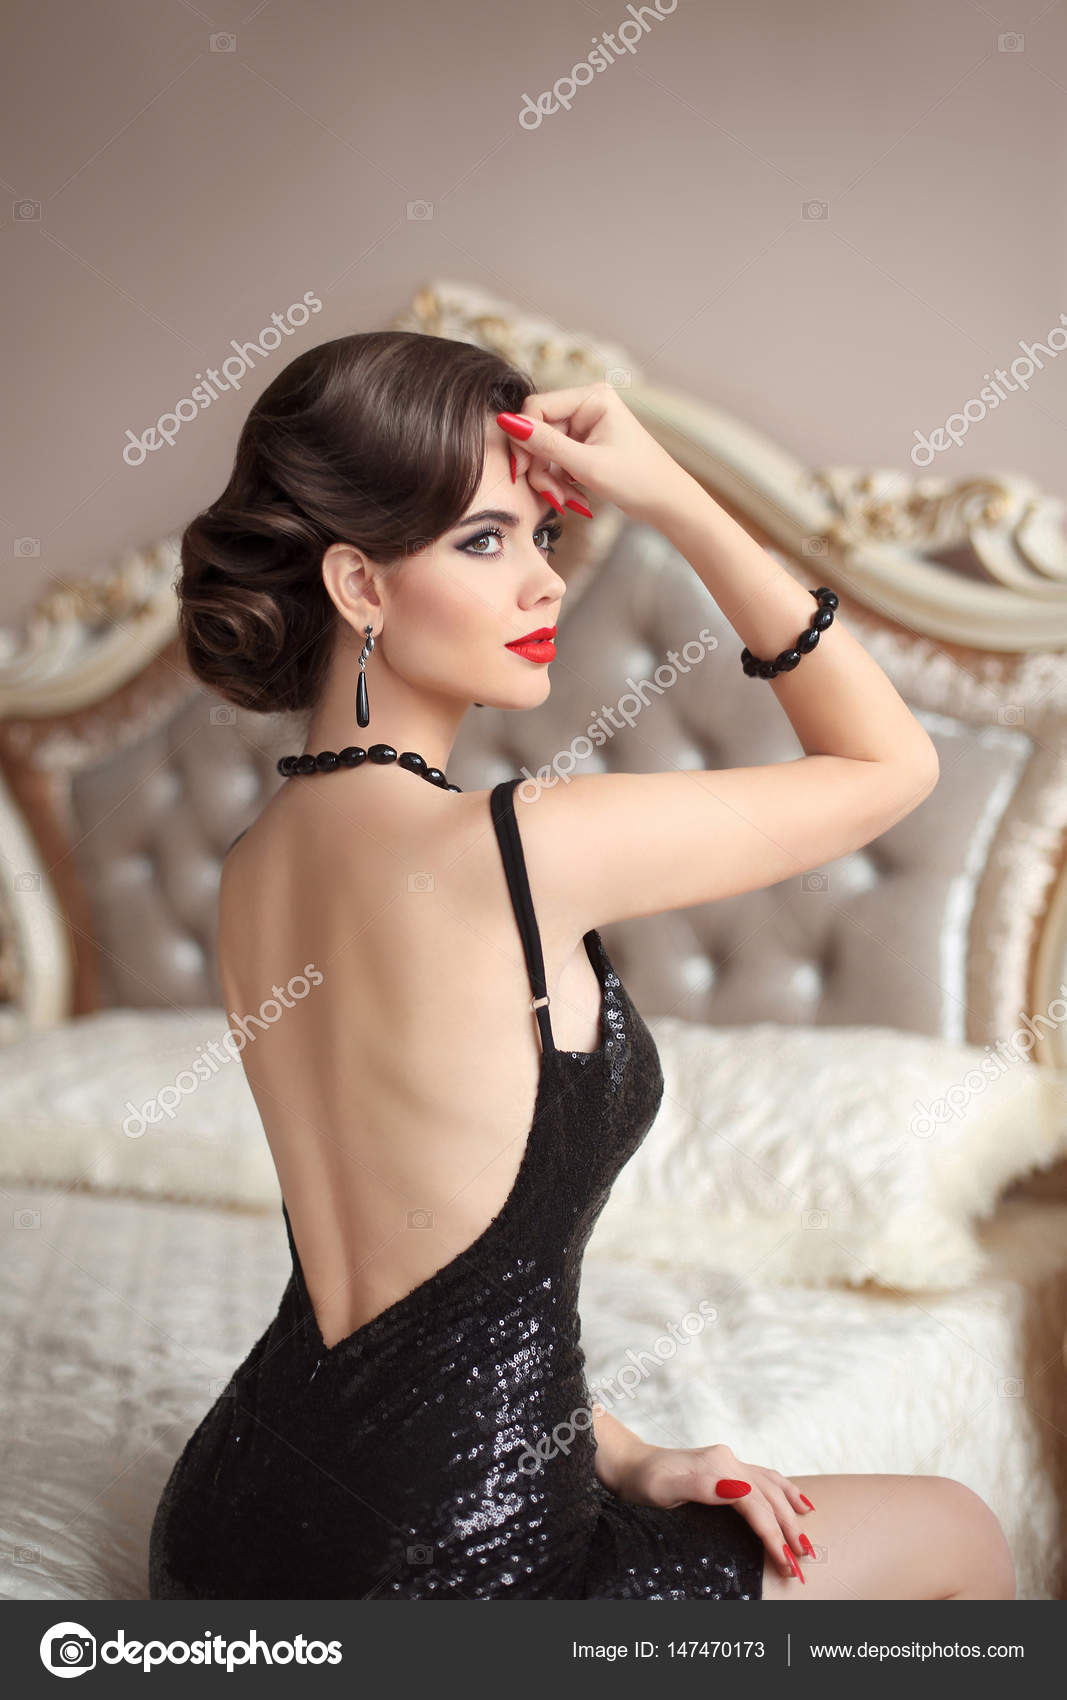 Beautiful back of elegant woman in black sexy dress posing on modern bed in bedroom  interior. Luxury life. Fashionable Brunette girl with gems jewelry set. bd2d51592